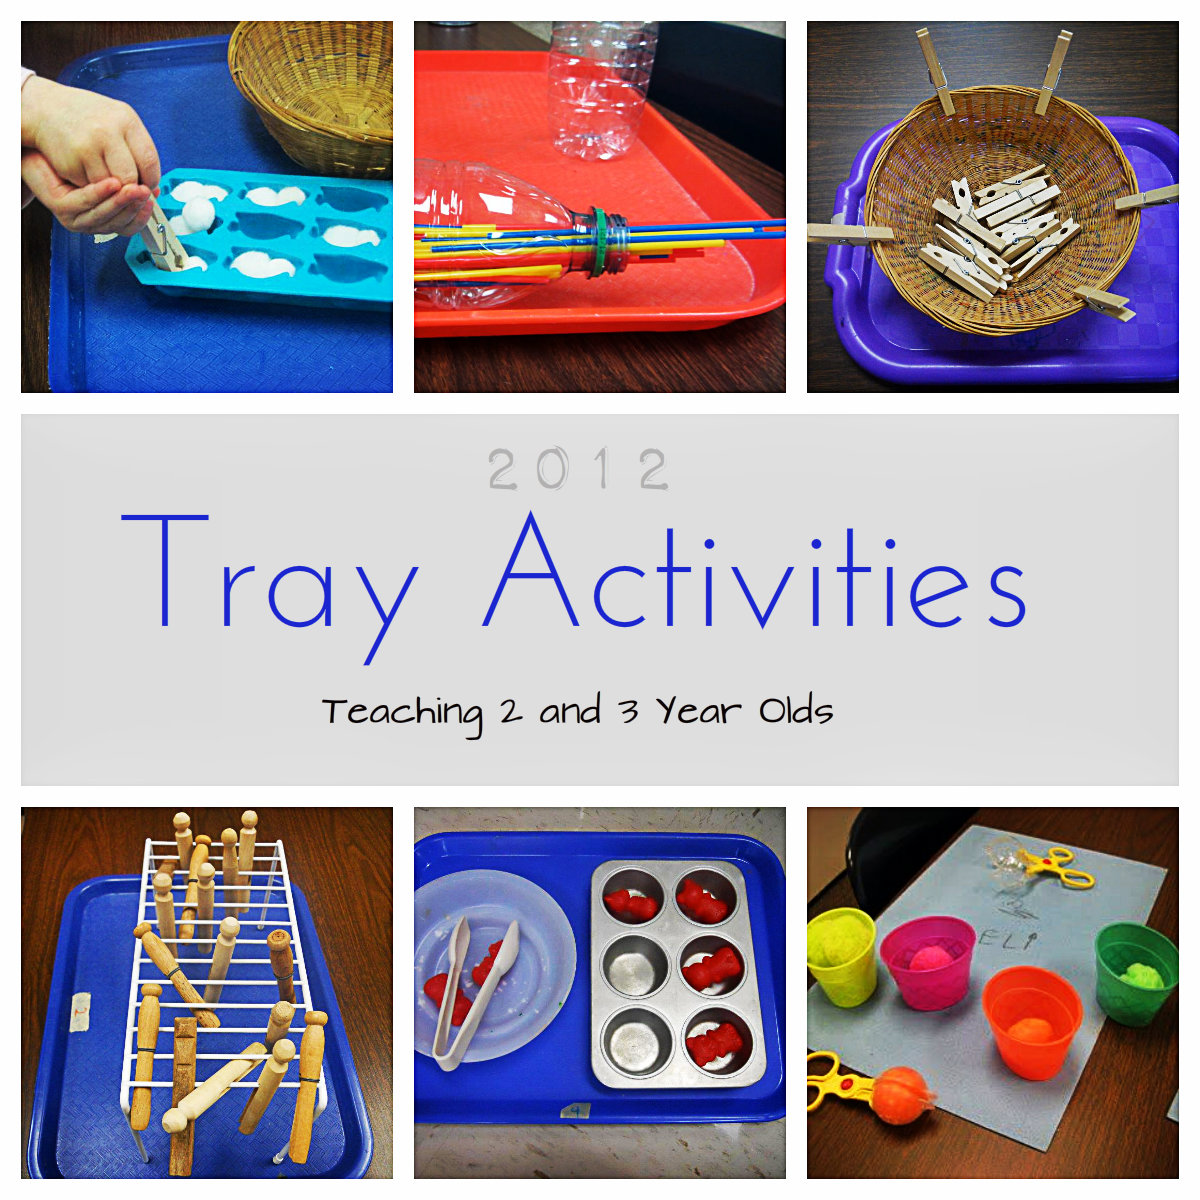 Teaching 2 And 3 Year Olds A Collection Of Tray Activities